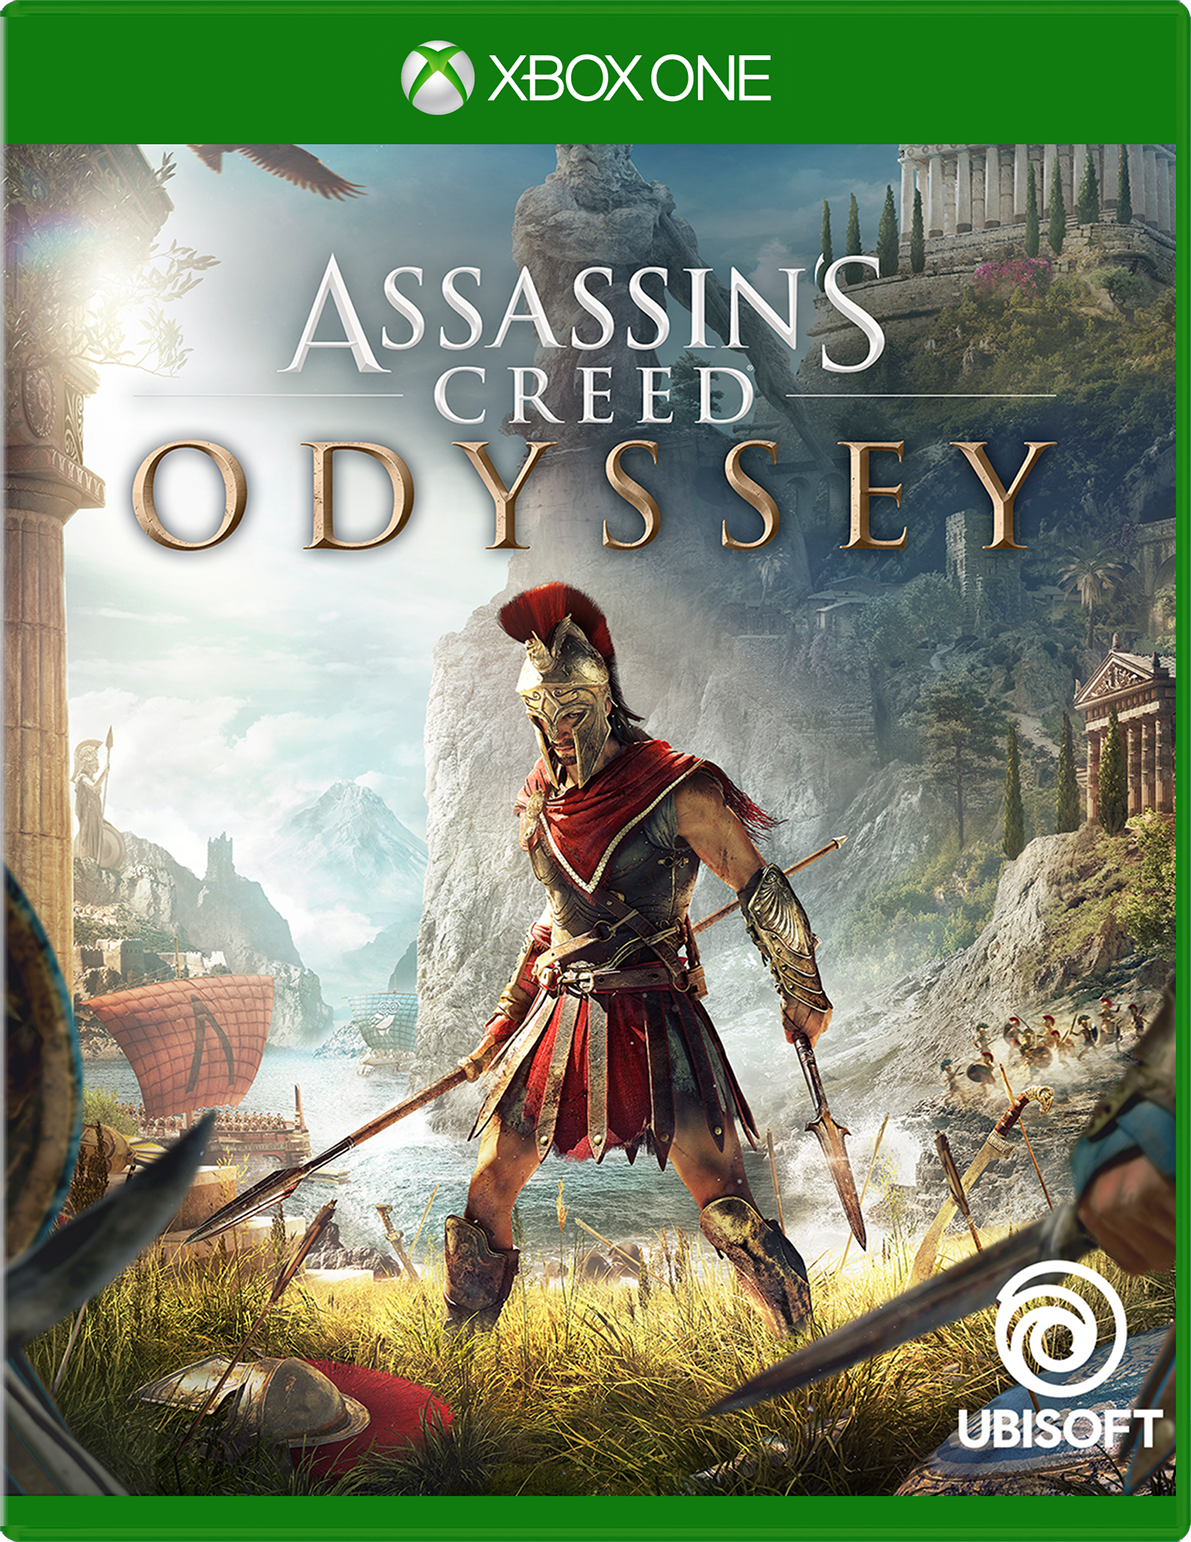 Image of Assassin's Creed Odyssey for Xbox One QH4-01119